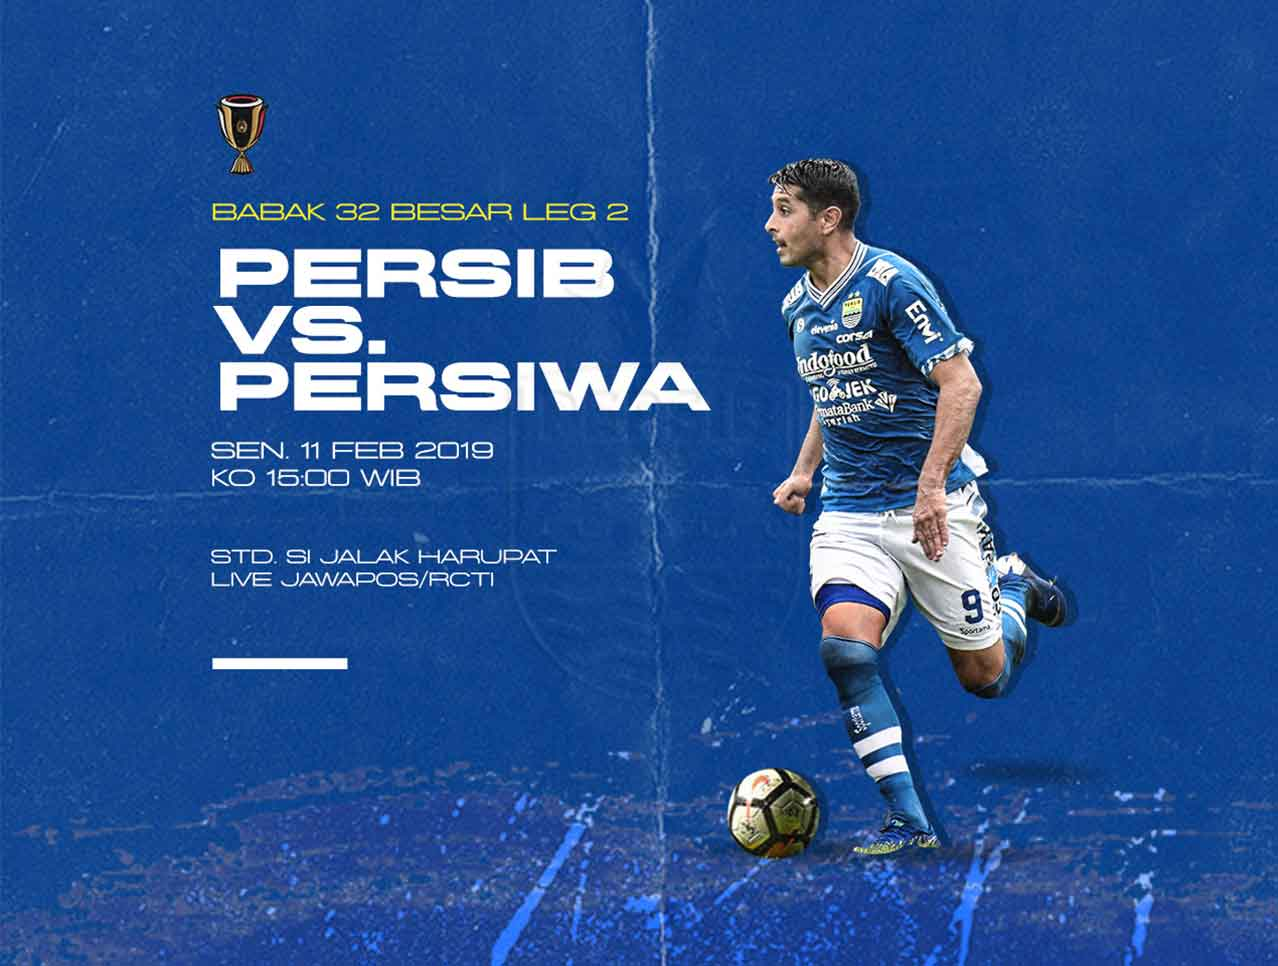 Flyer preview persib persiwa der